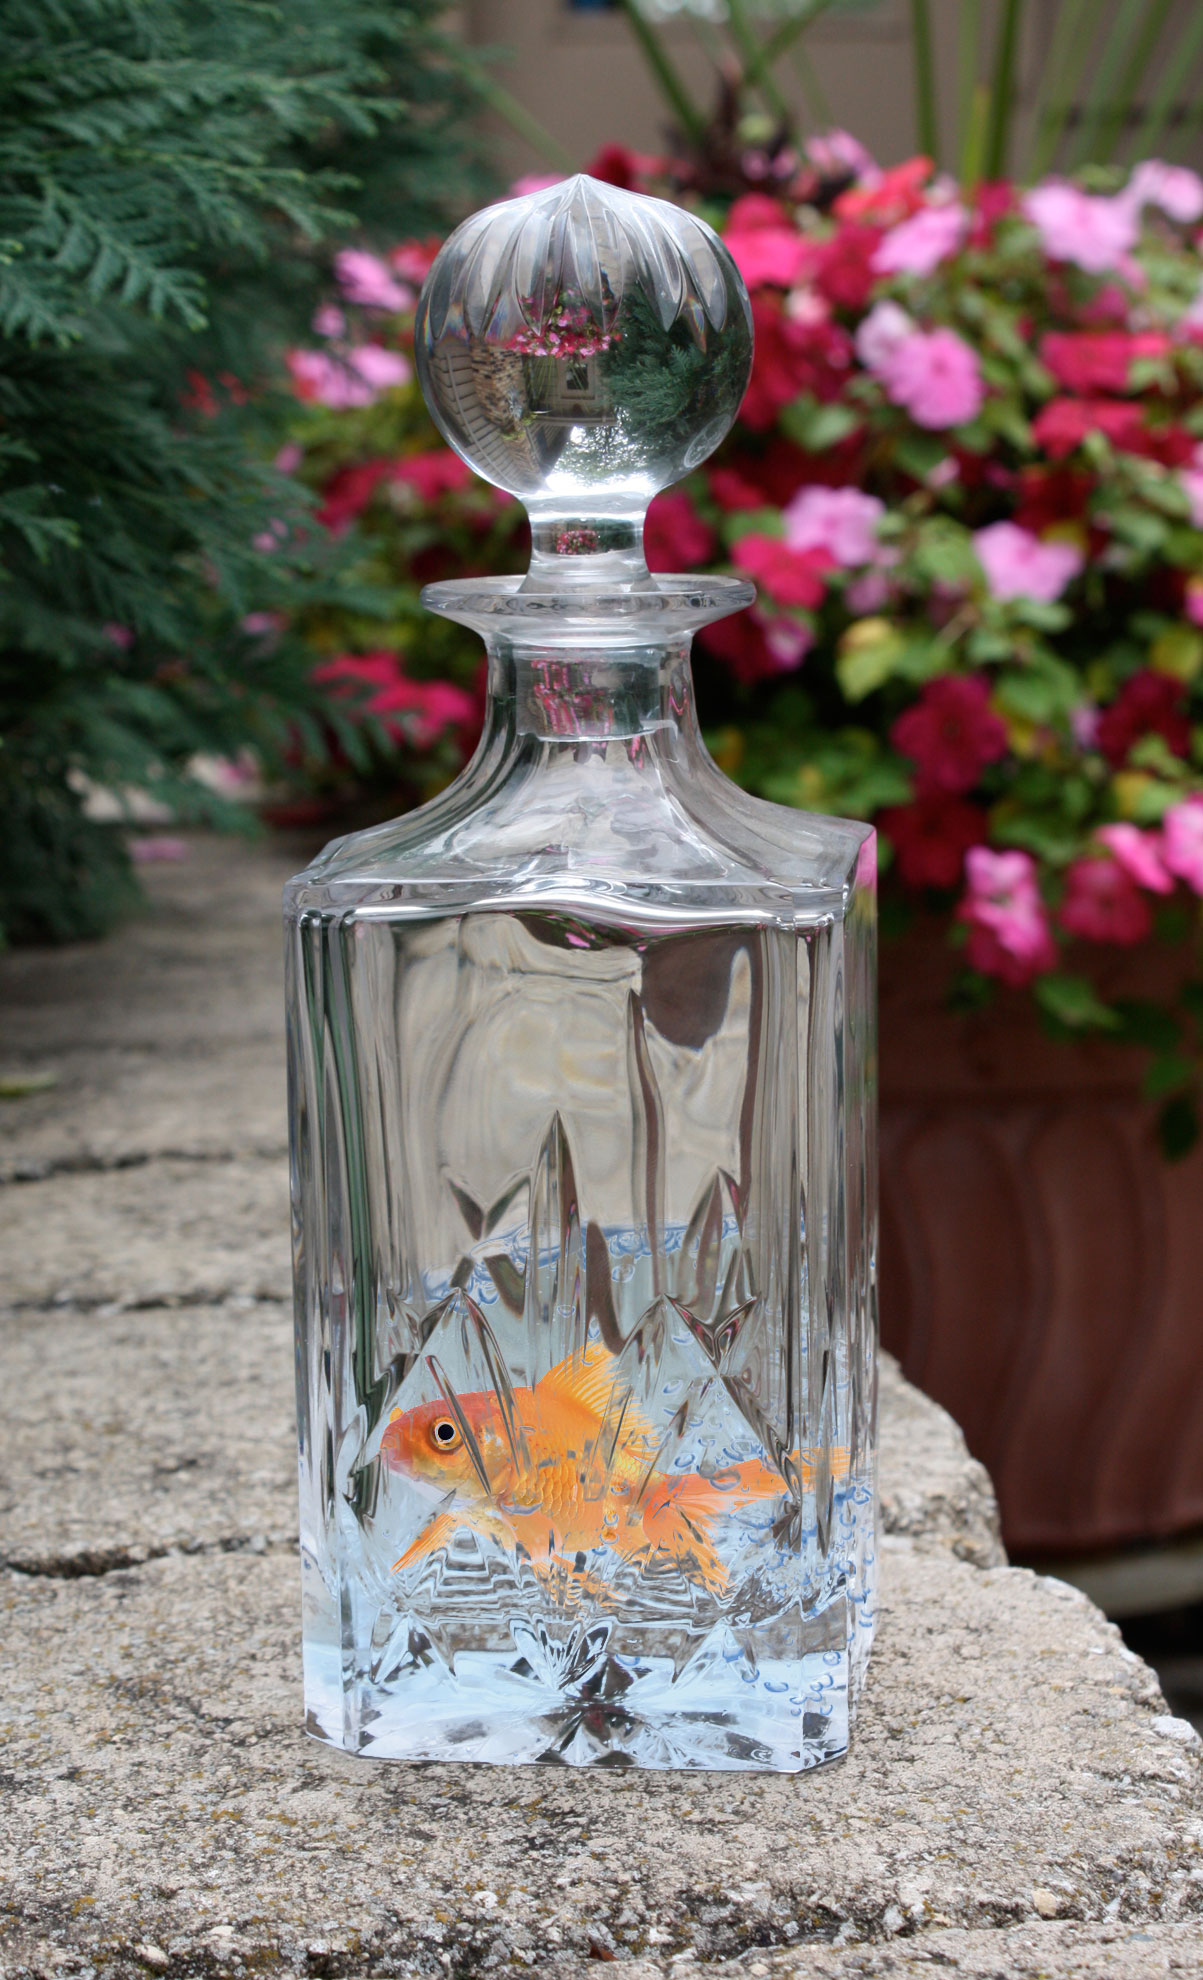 Fish in a decanter